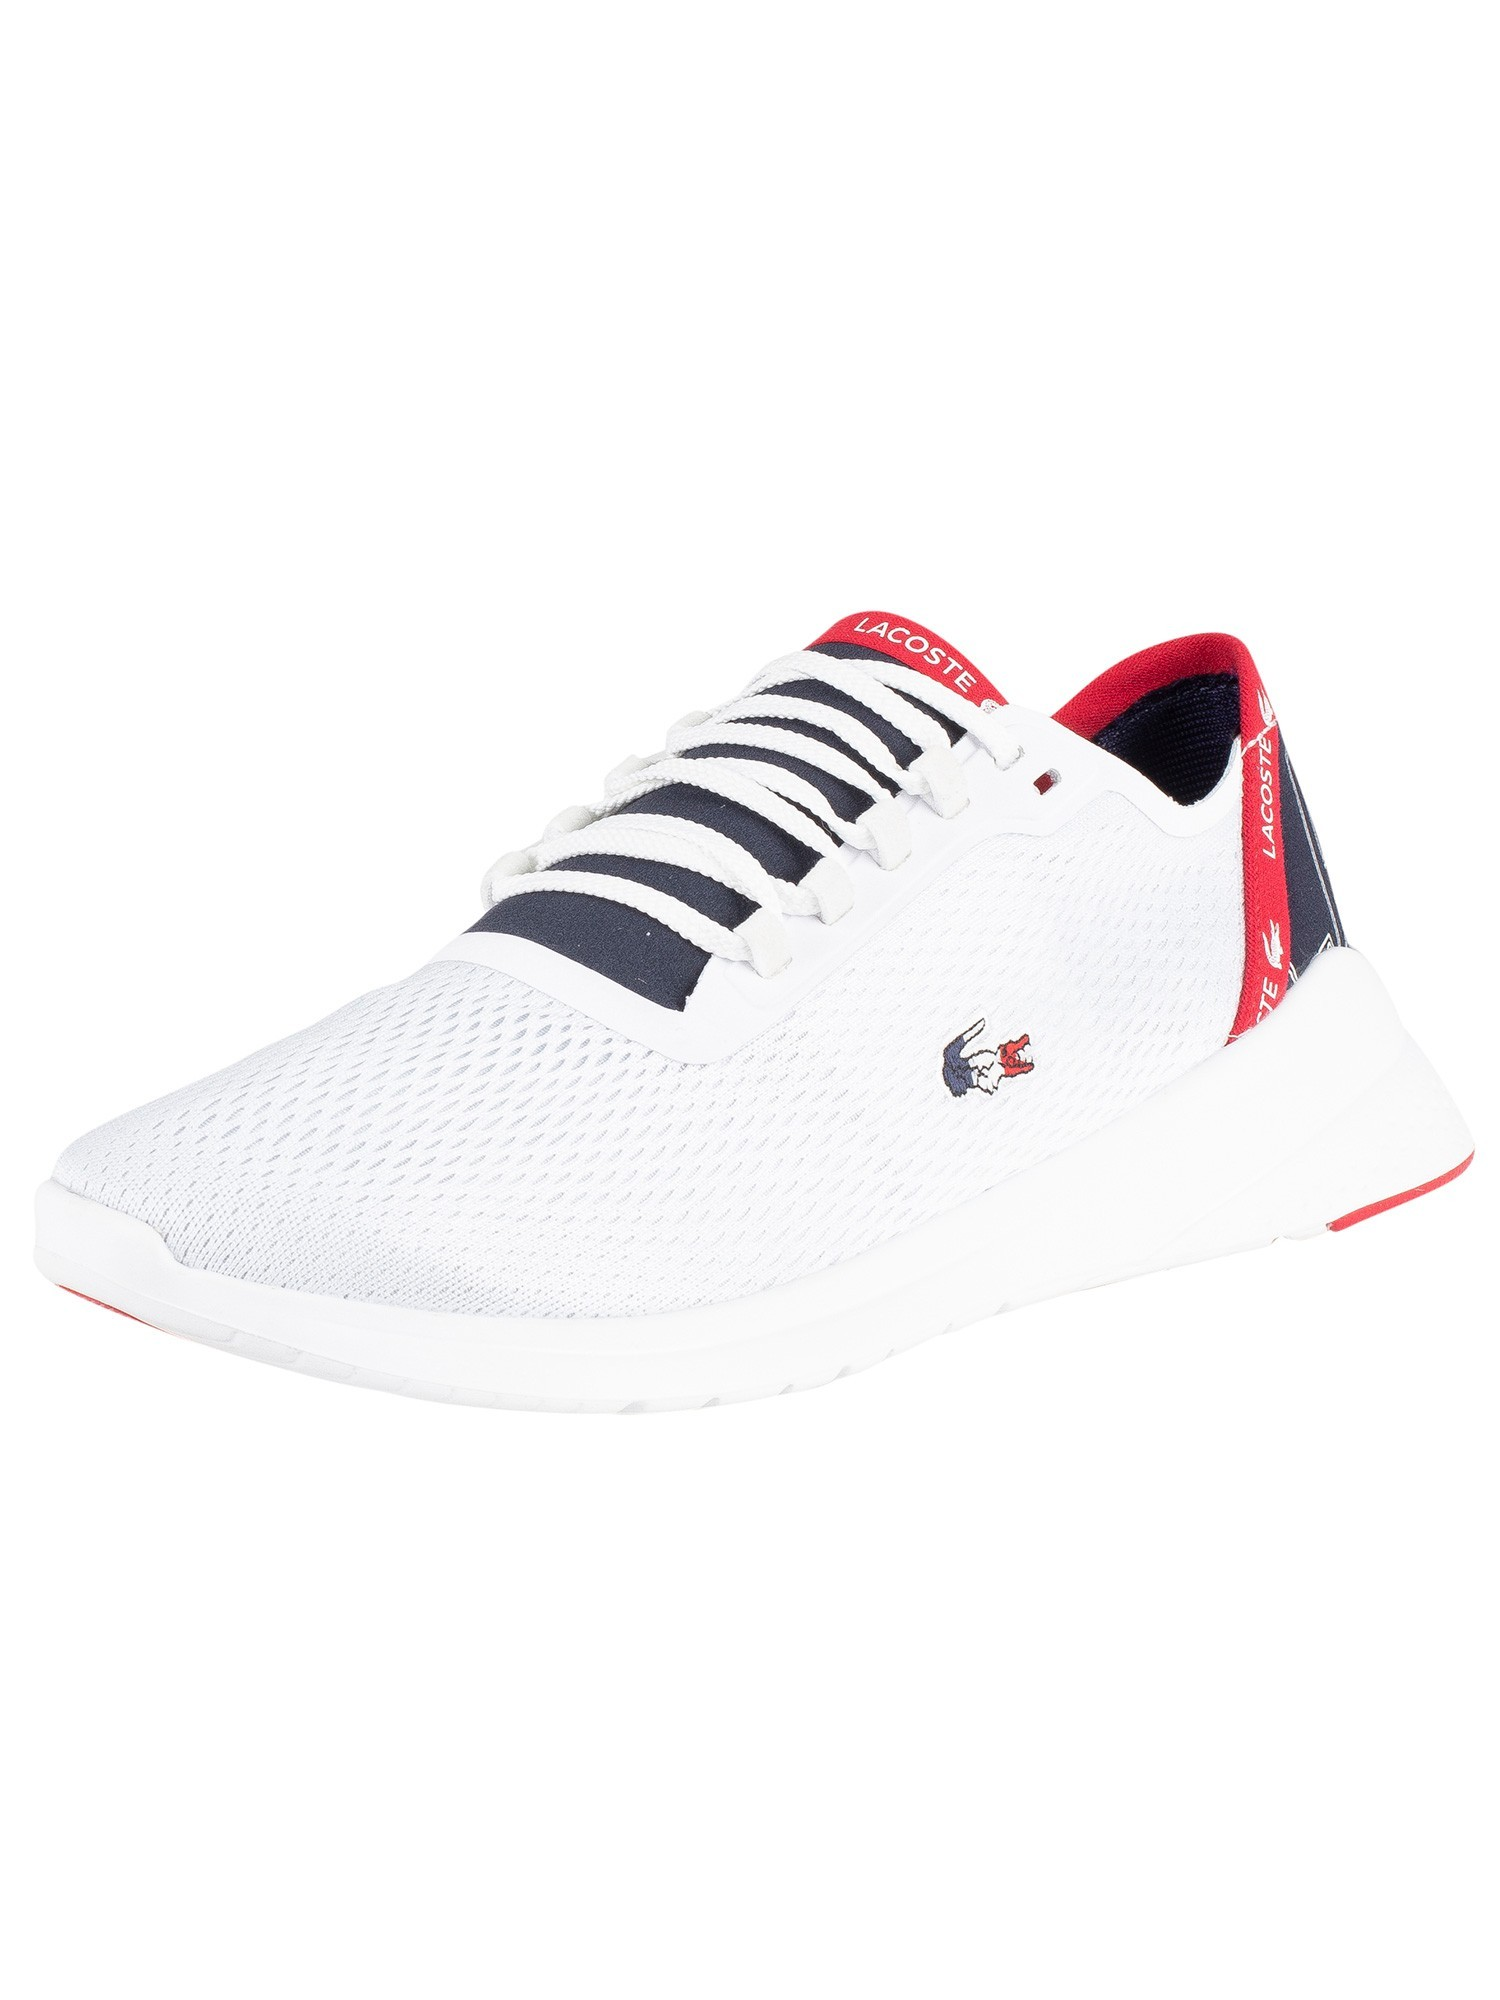 Lacoste White Navy Red Lt Fit 119 5 Sma Trainers